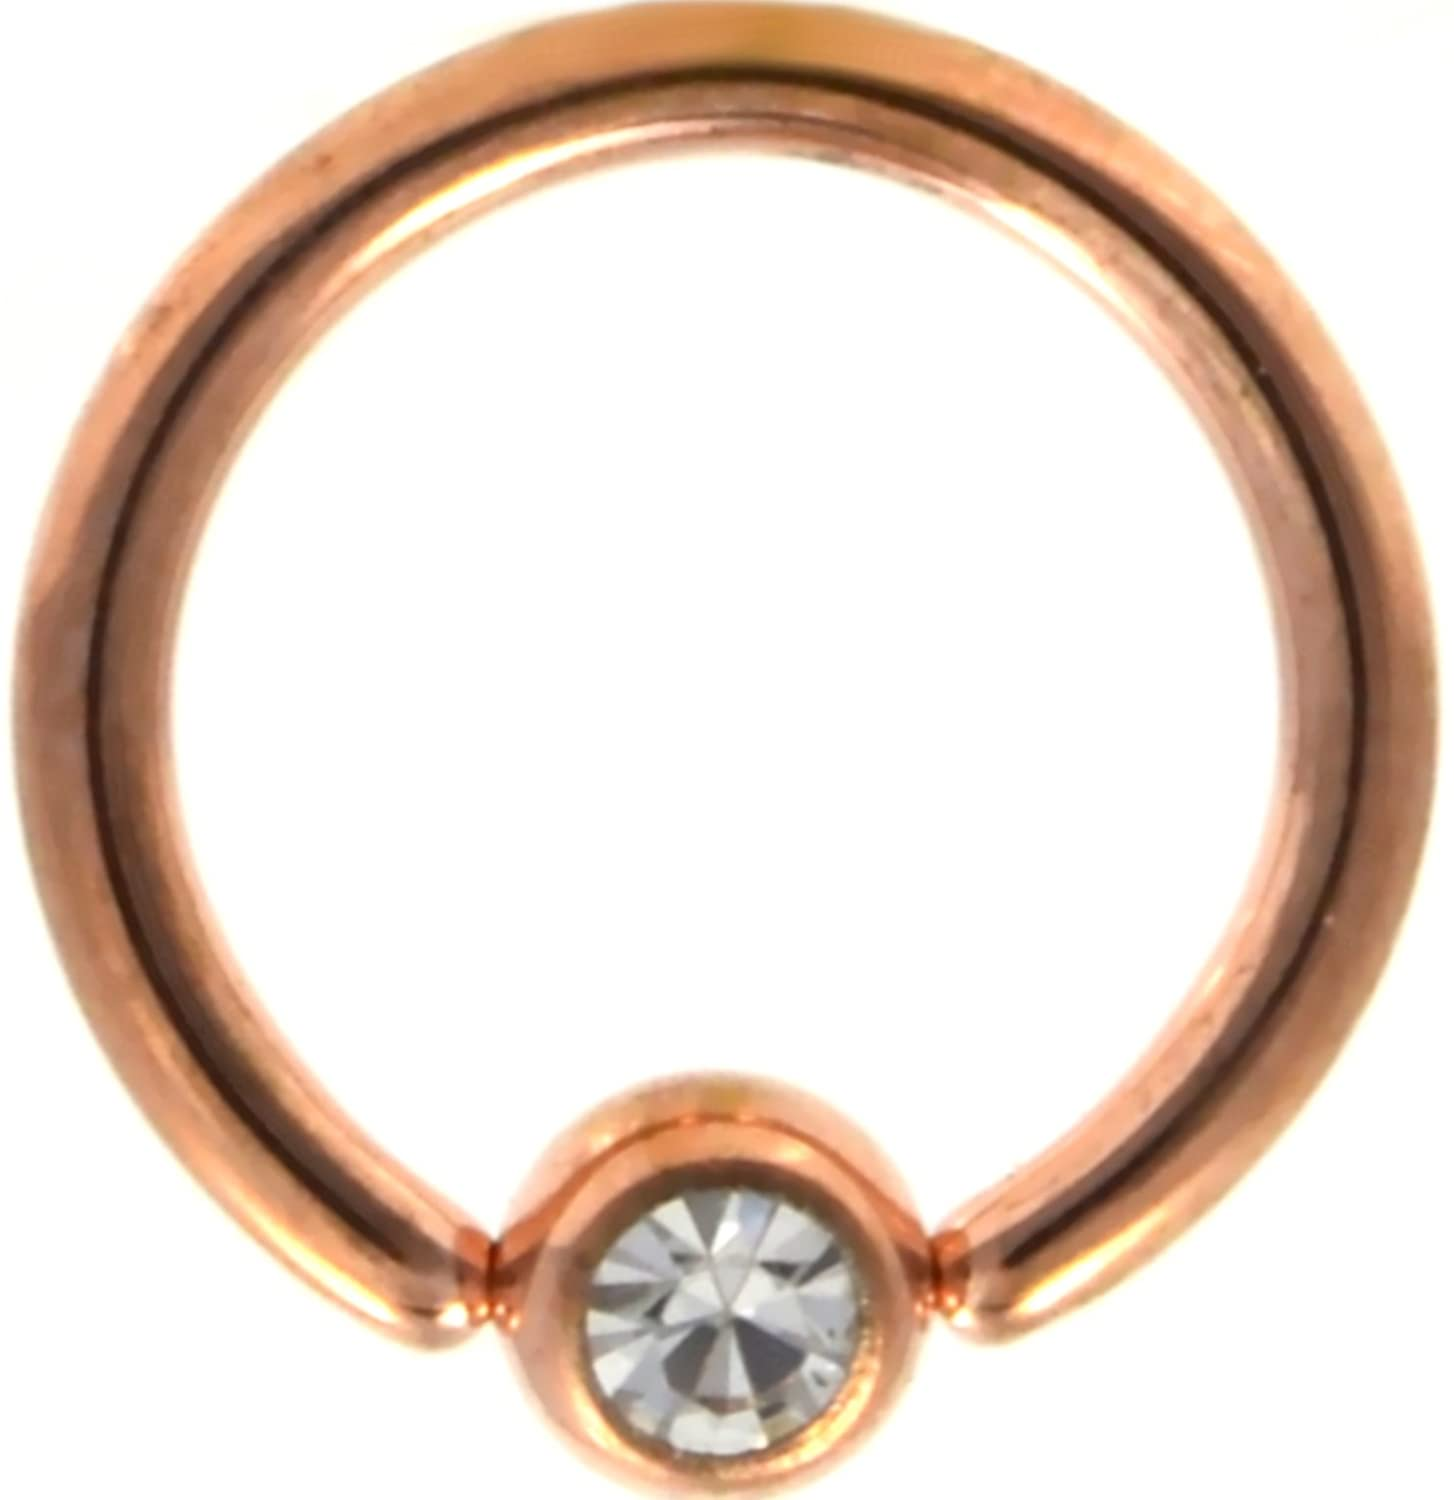 Rose Gold-Tone IP Steel Clear Crystal Accent Ball CBR Hoop Captive Bead Rings (Sold in Pairs)